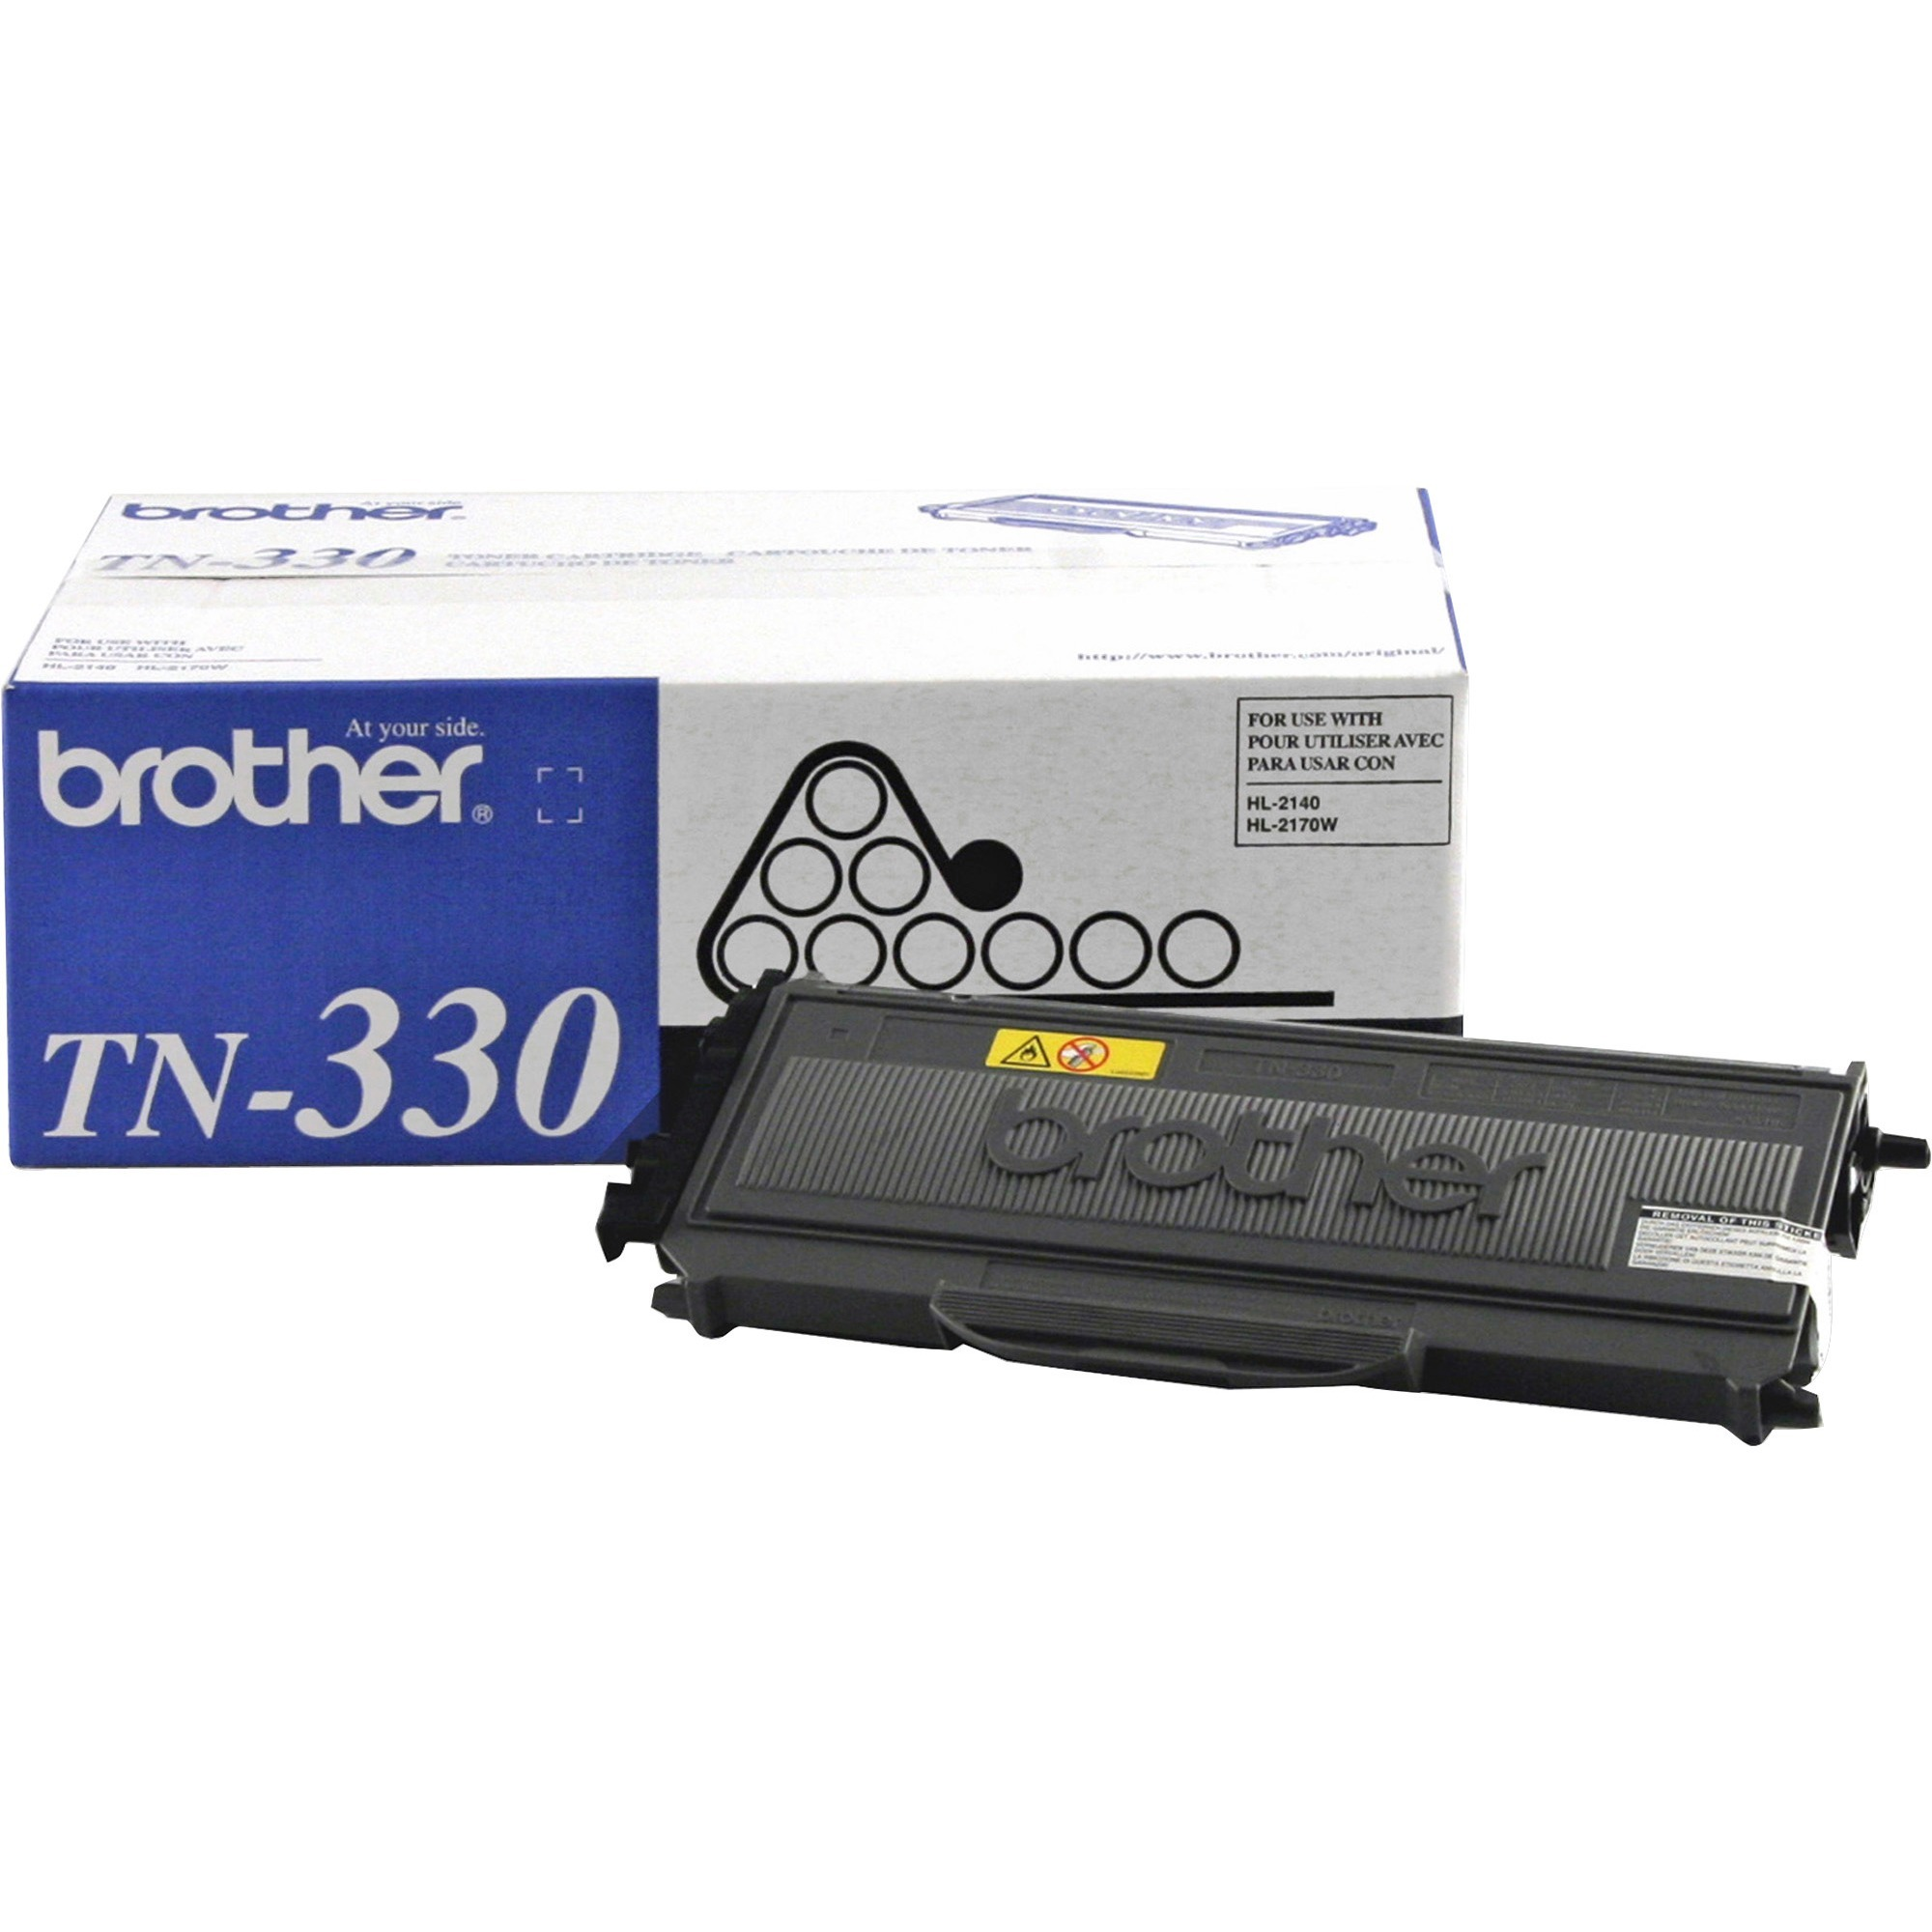 TN330/360 Toner Cartridges